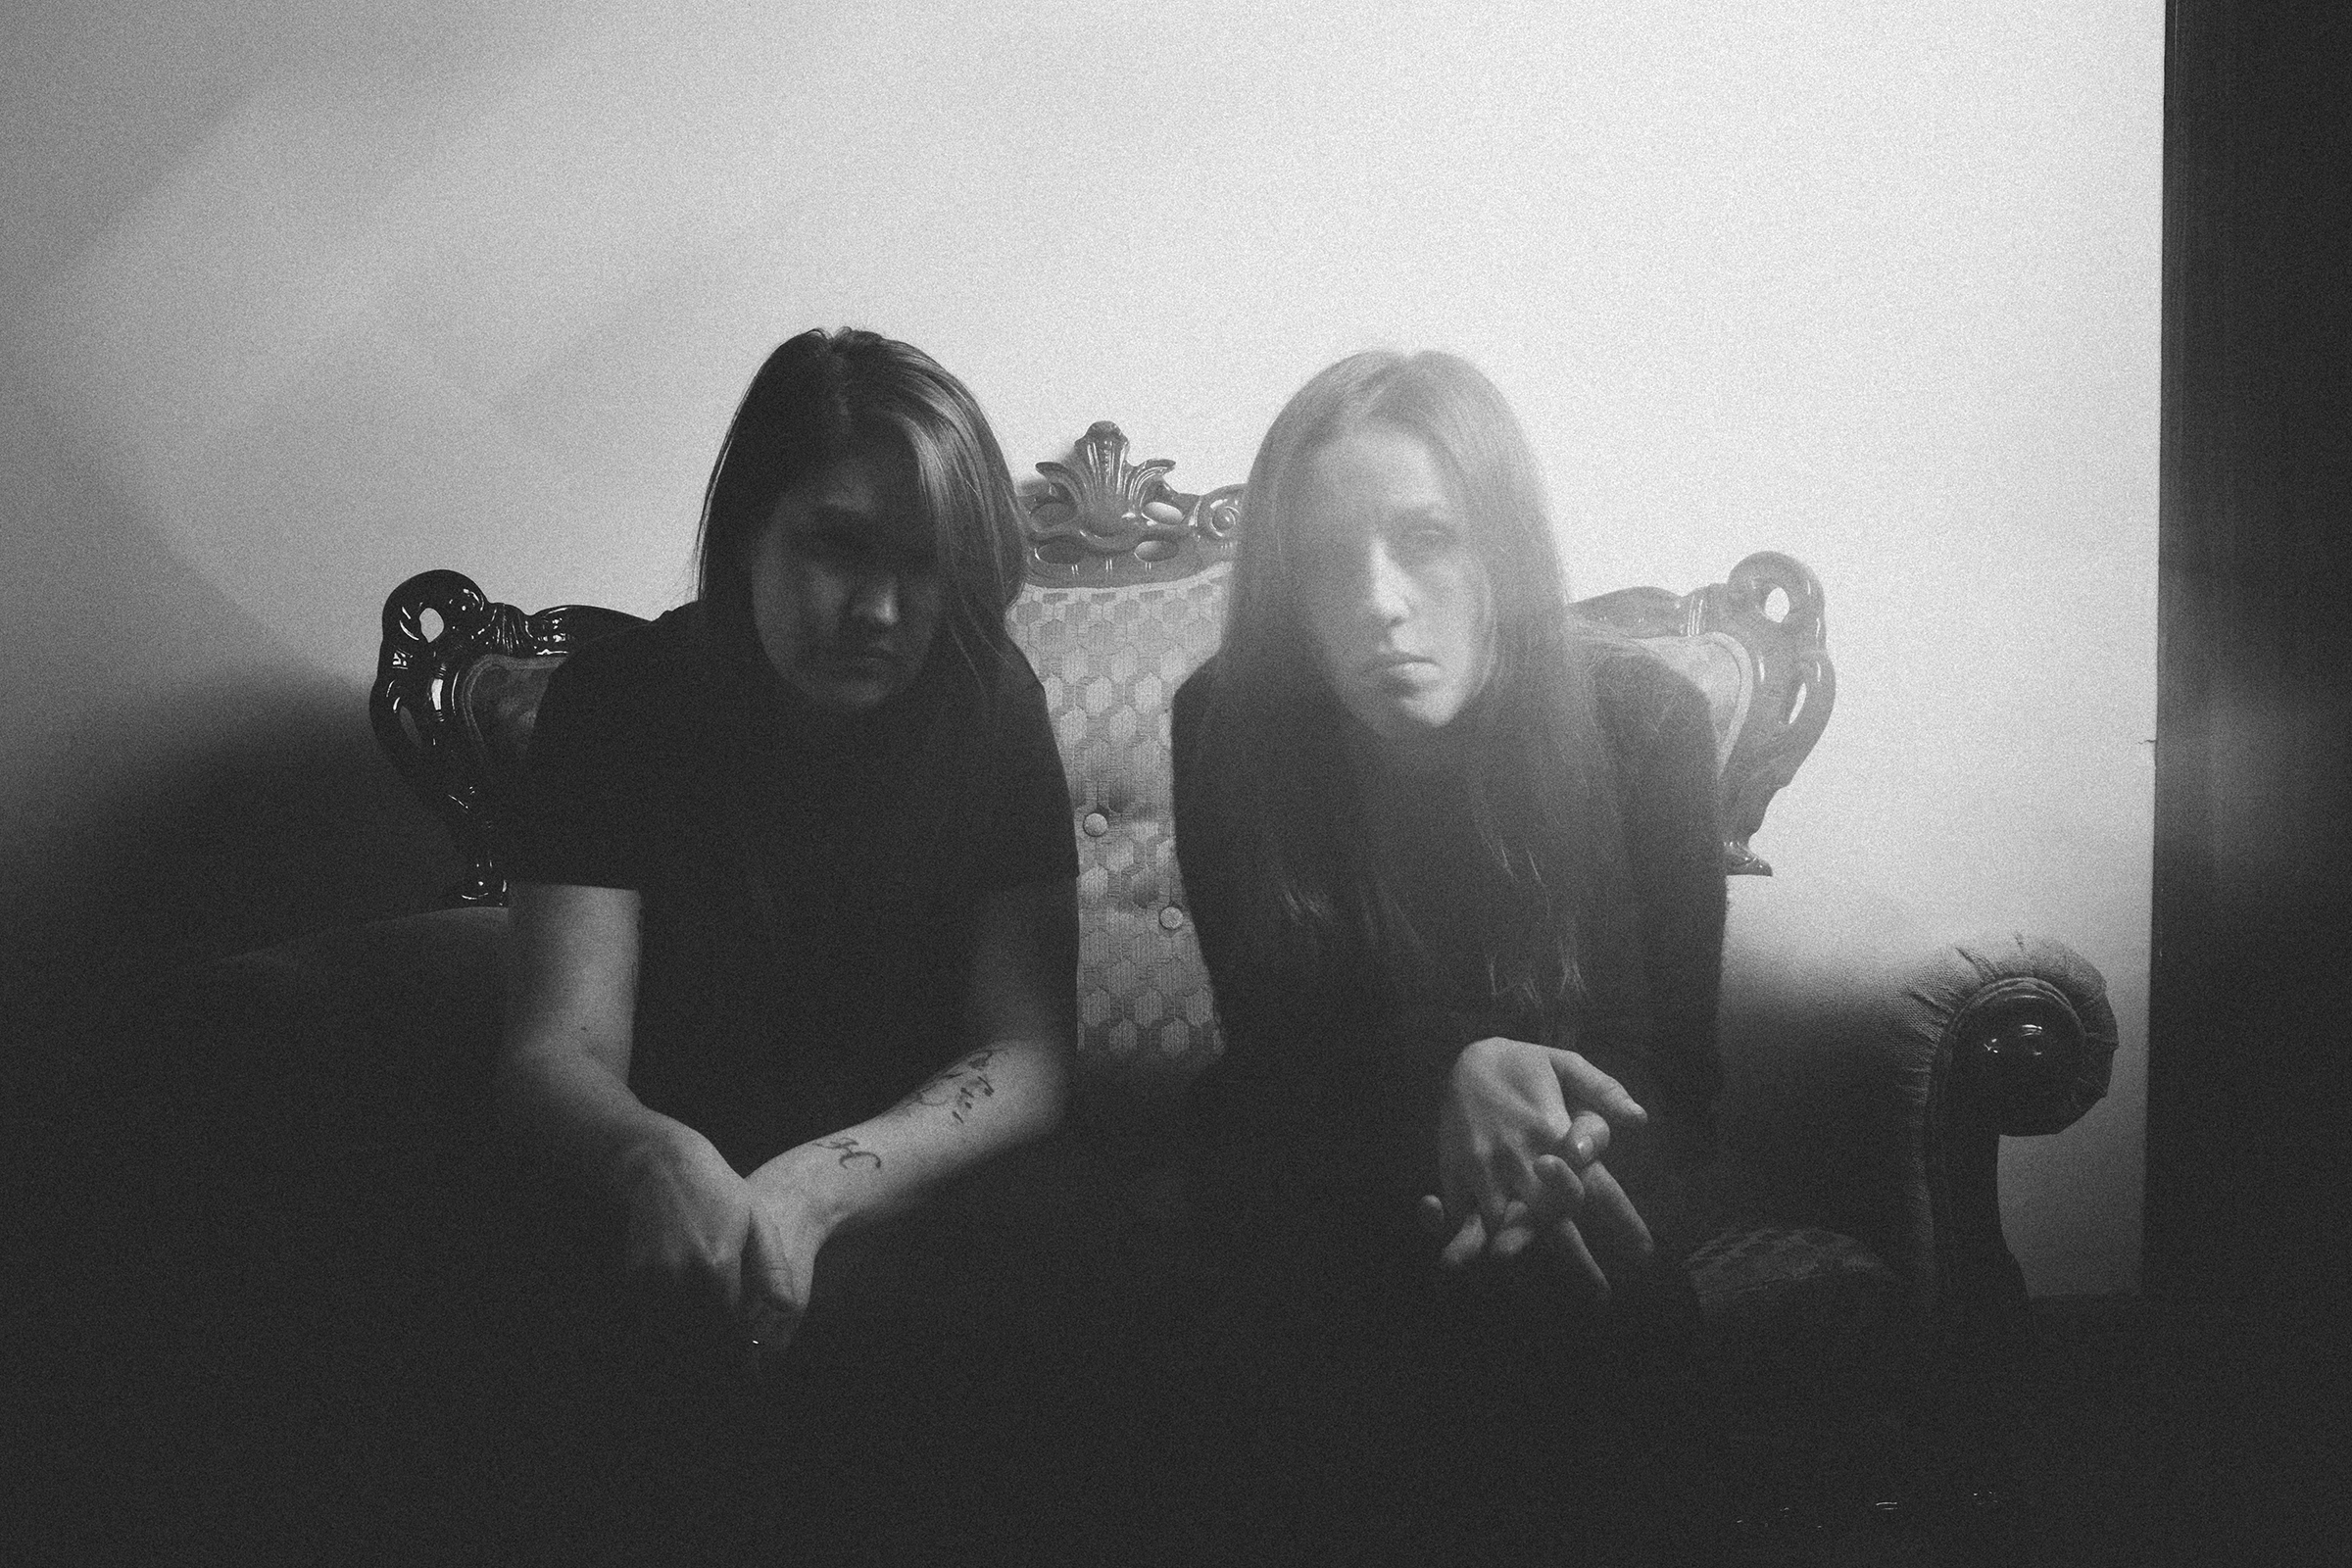 MIDAS FALL: Immersive Evaporate Full-Length From Ambient Post-Rock Duo Streaming In Its Entirety; Record To See Release Friday Via Monotreme Records